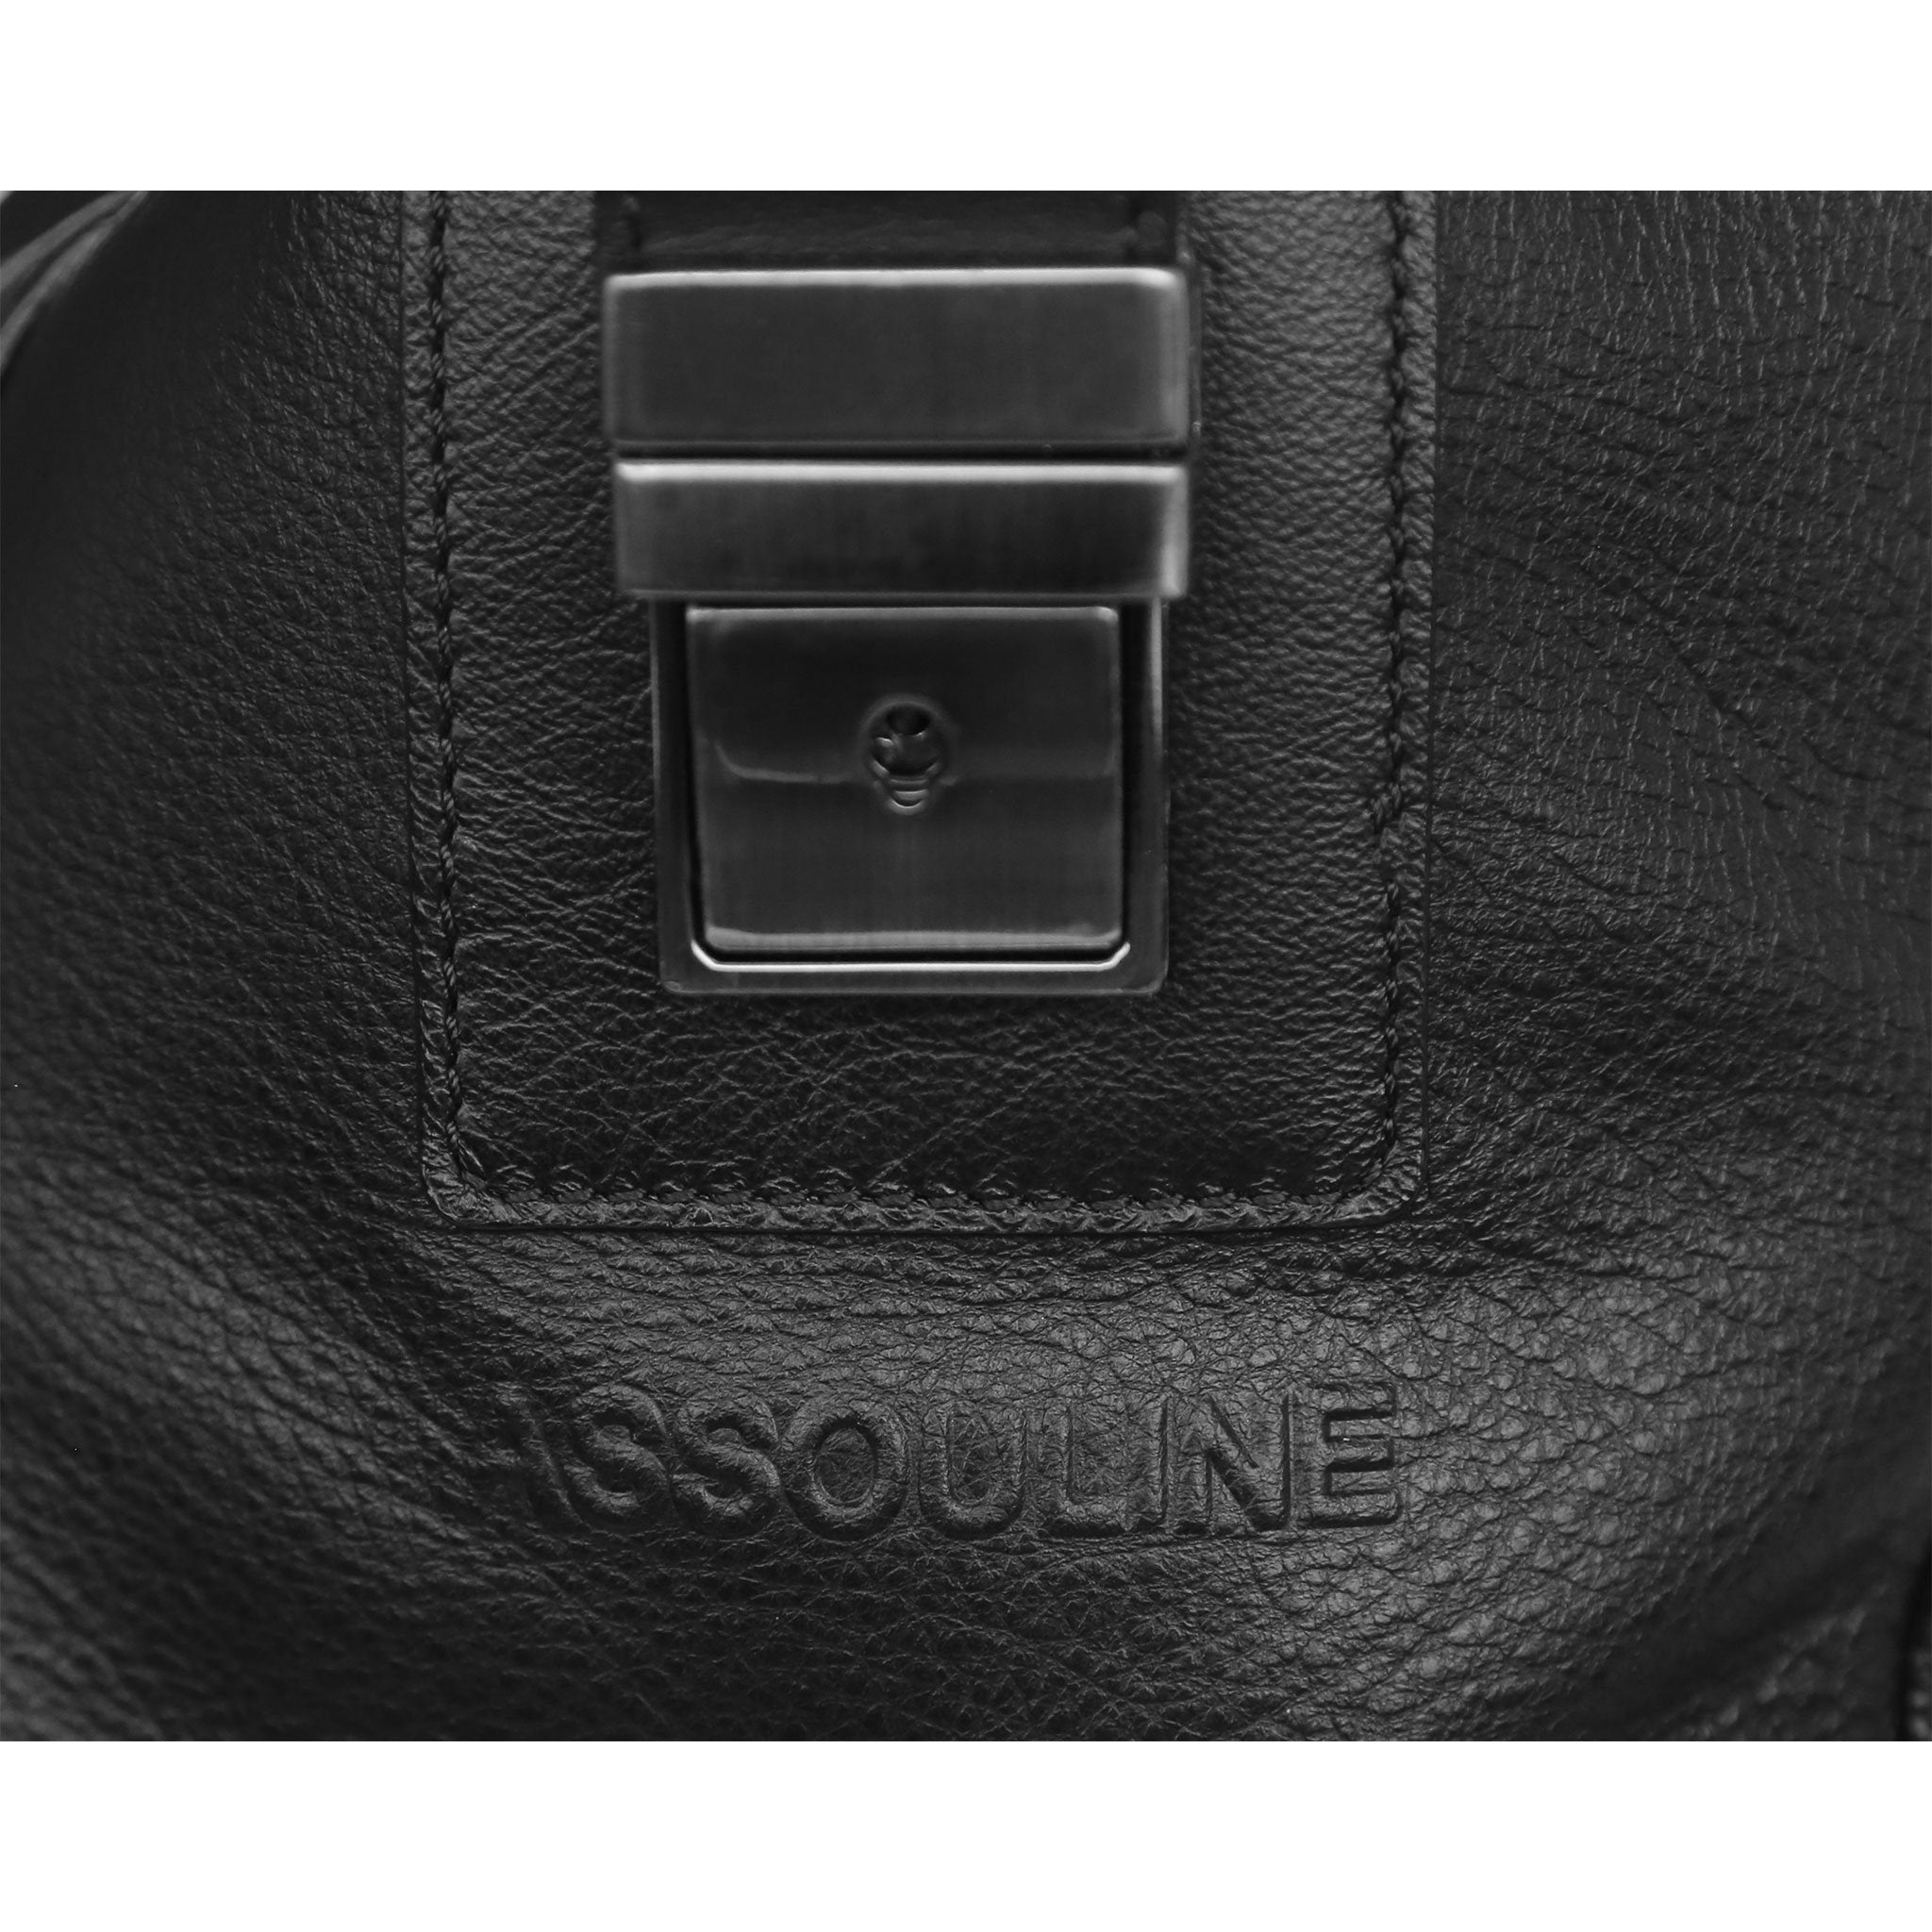 Didot Collection Black Bookbag - Assouline